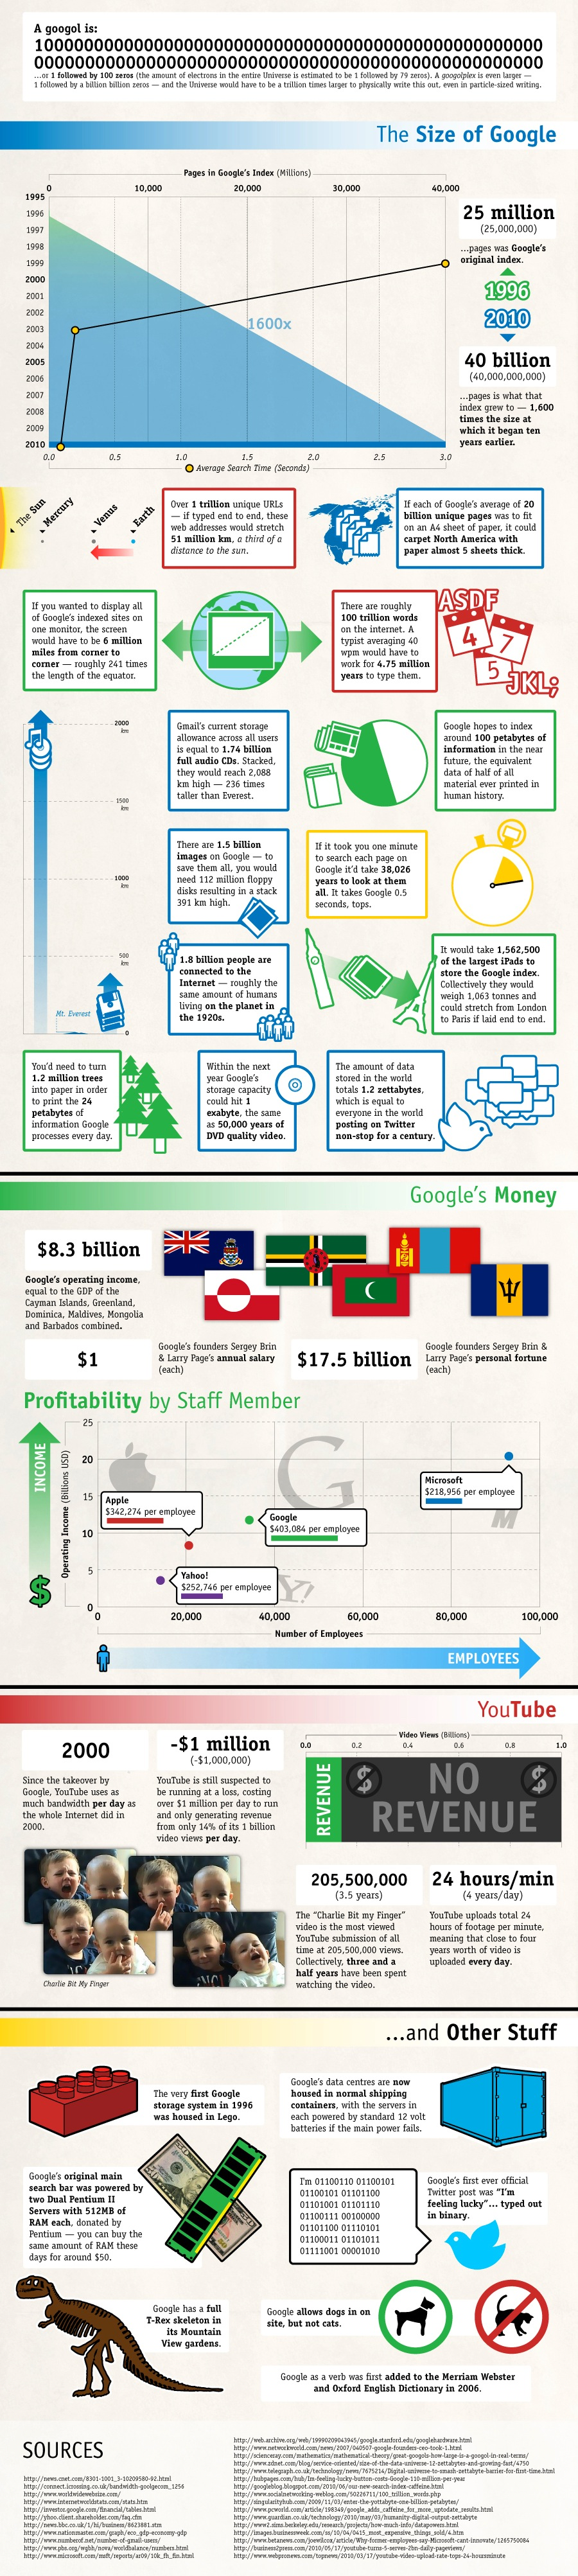 google by the numbers So how massive is Google anyway?